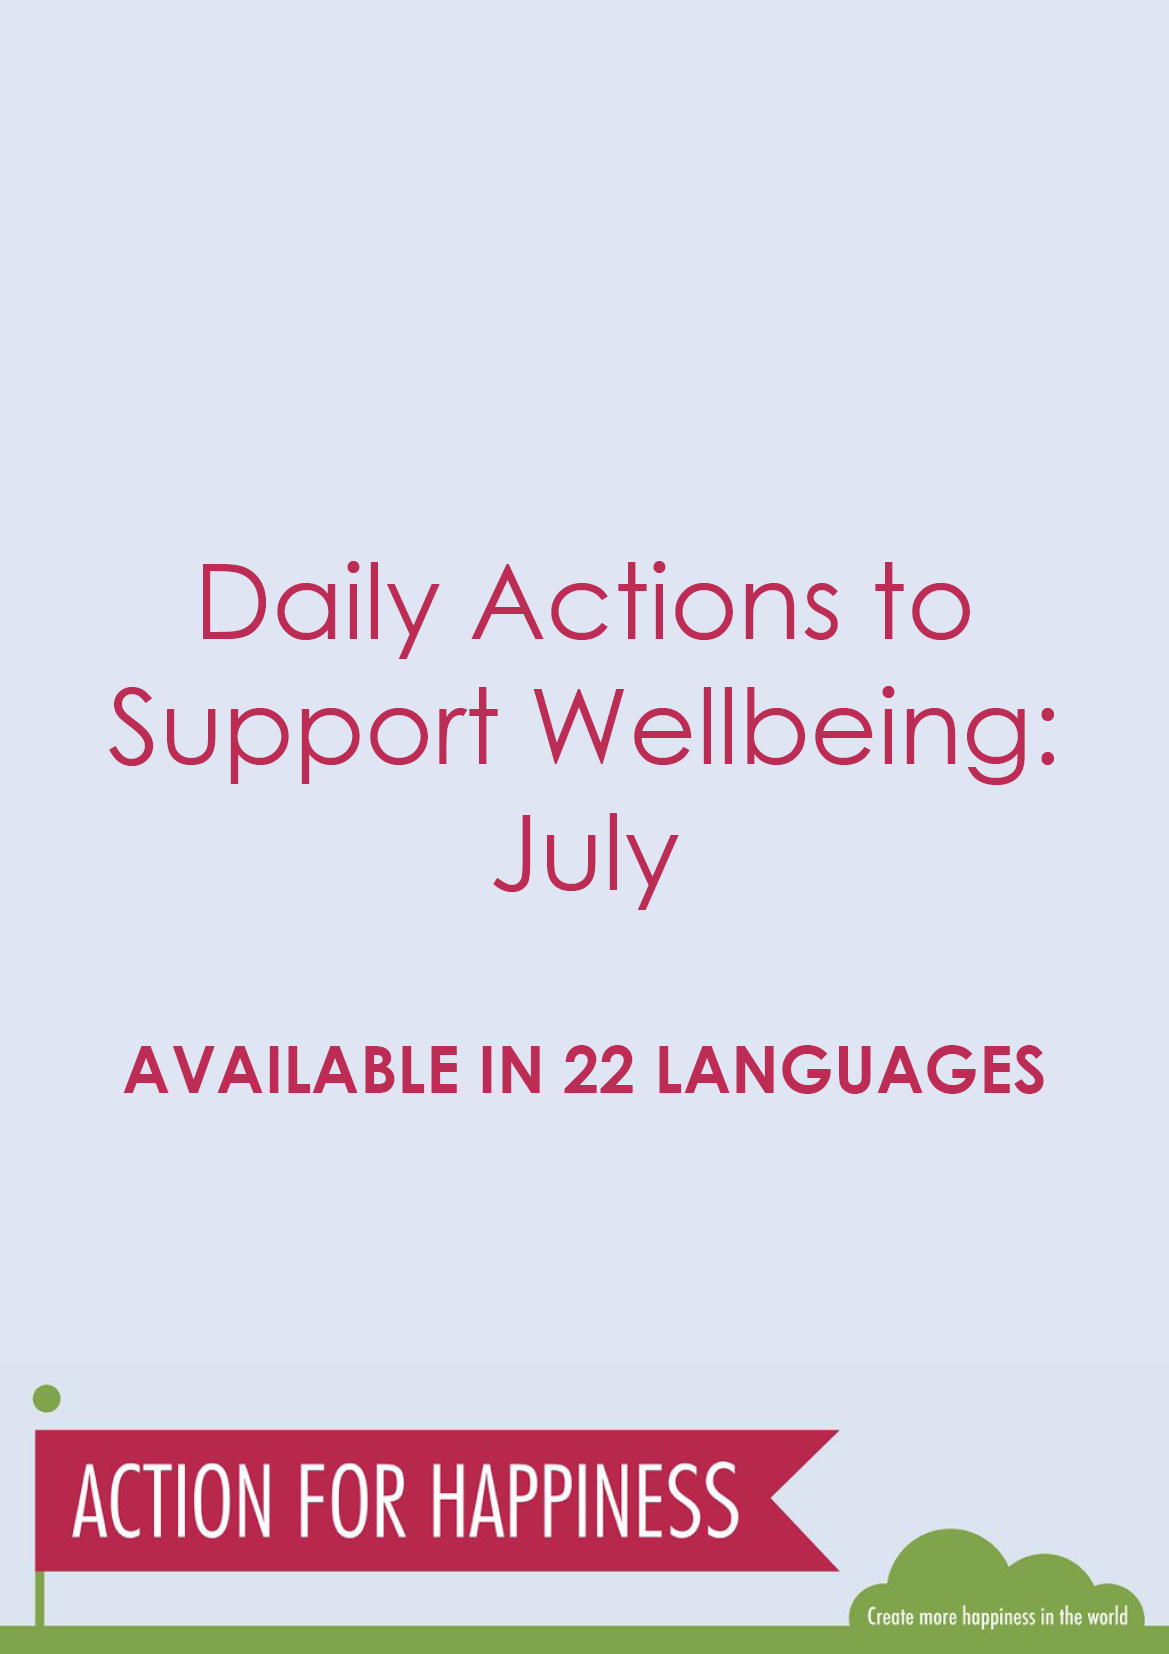 July Wellbeing